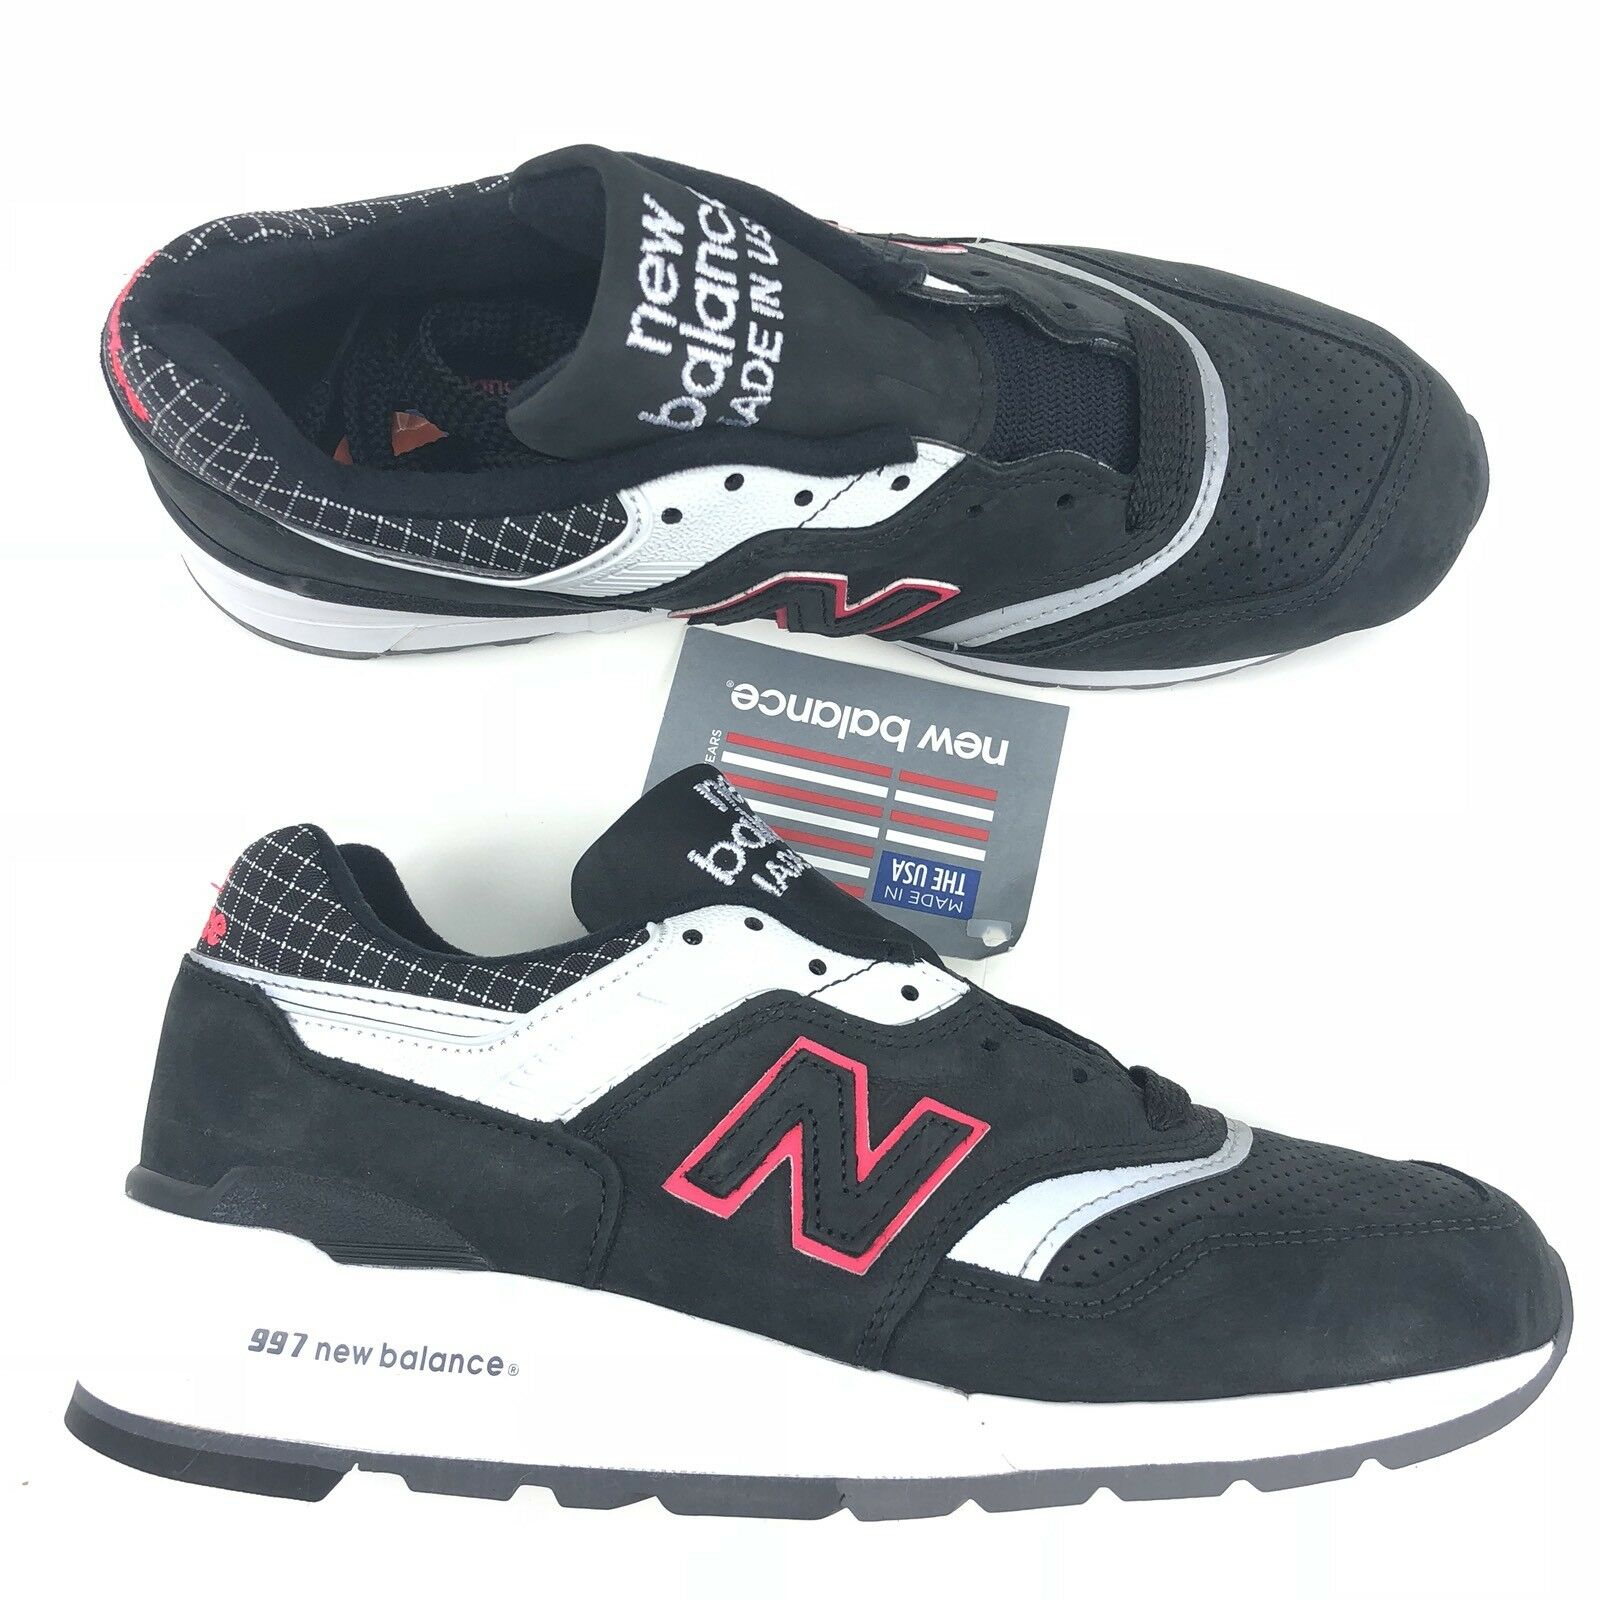 New Balance 997 made in USA noir gris blanc argent Hommes Taille 7 style M997CR